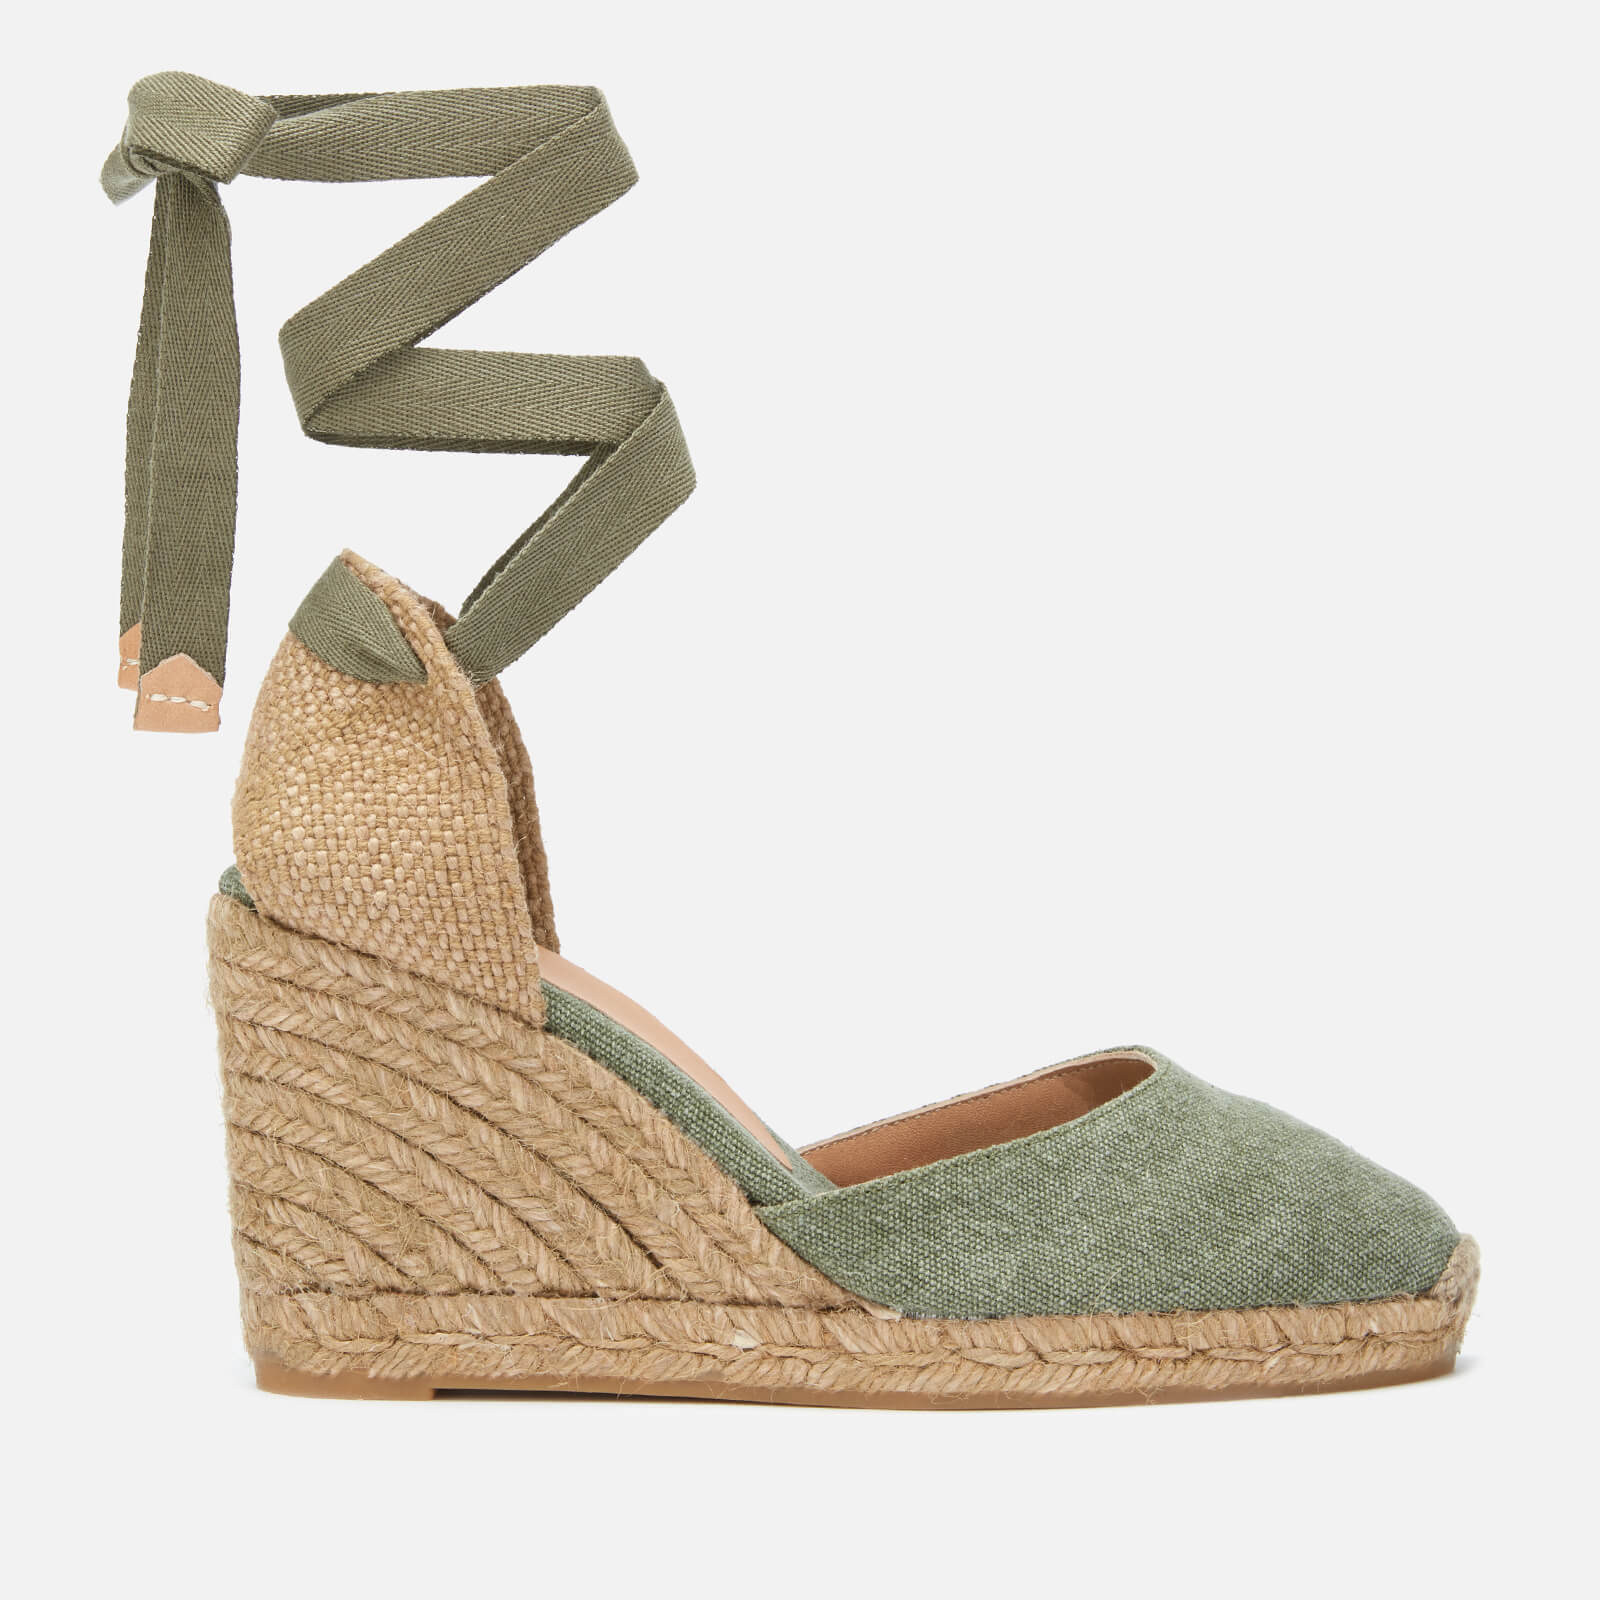 244d61abb7ff Castaner Women s Carina Espadrille Wedged Sandals - Oliva - Free UK  Delivery over £50